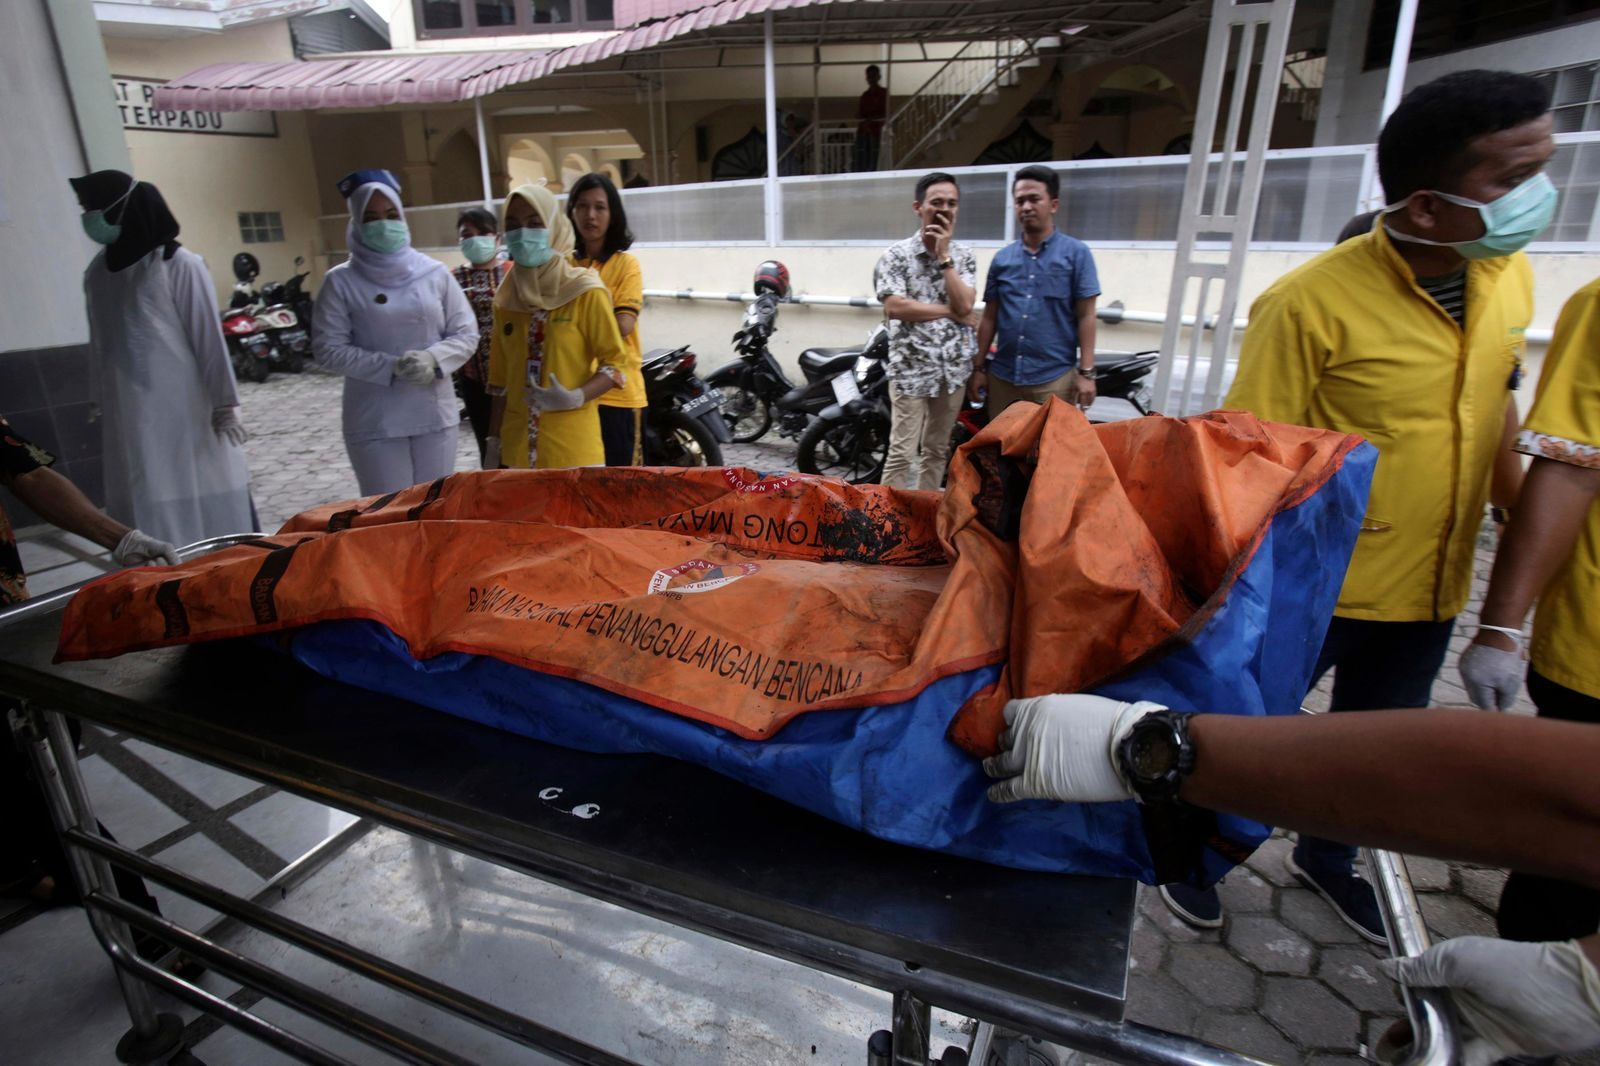 Paramedics put body bags containing the remains of the victims of a fire that razed through a match factory on a stretcher upon arrival at a hospital in Medan, North Sumatra, Indonesia, Friday, June 21, 2019. A number of people including children were killed in the fire that swept through a house that doubled as a match factory, a disaster official said Friday. (AP Photo/Binsar Bakkara)